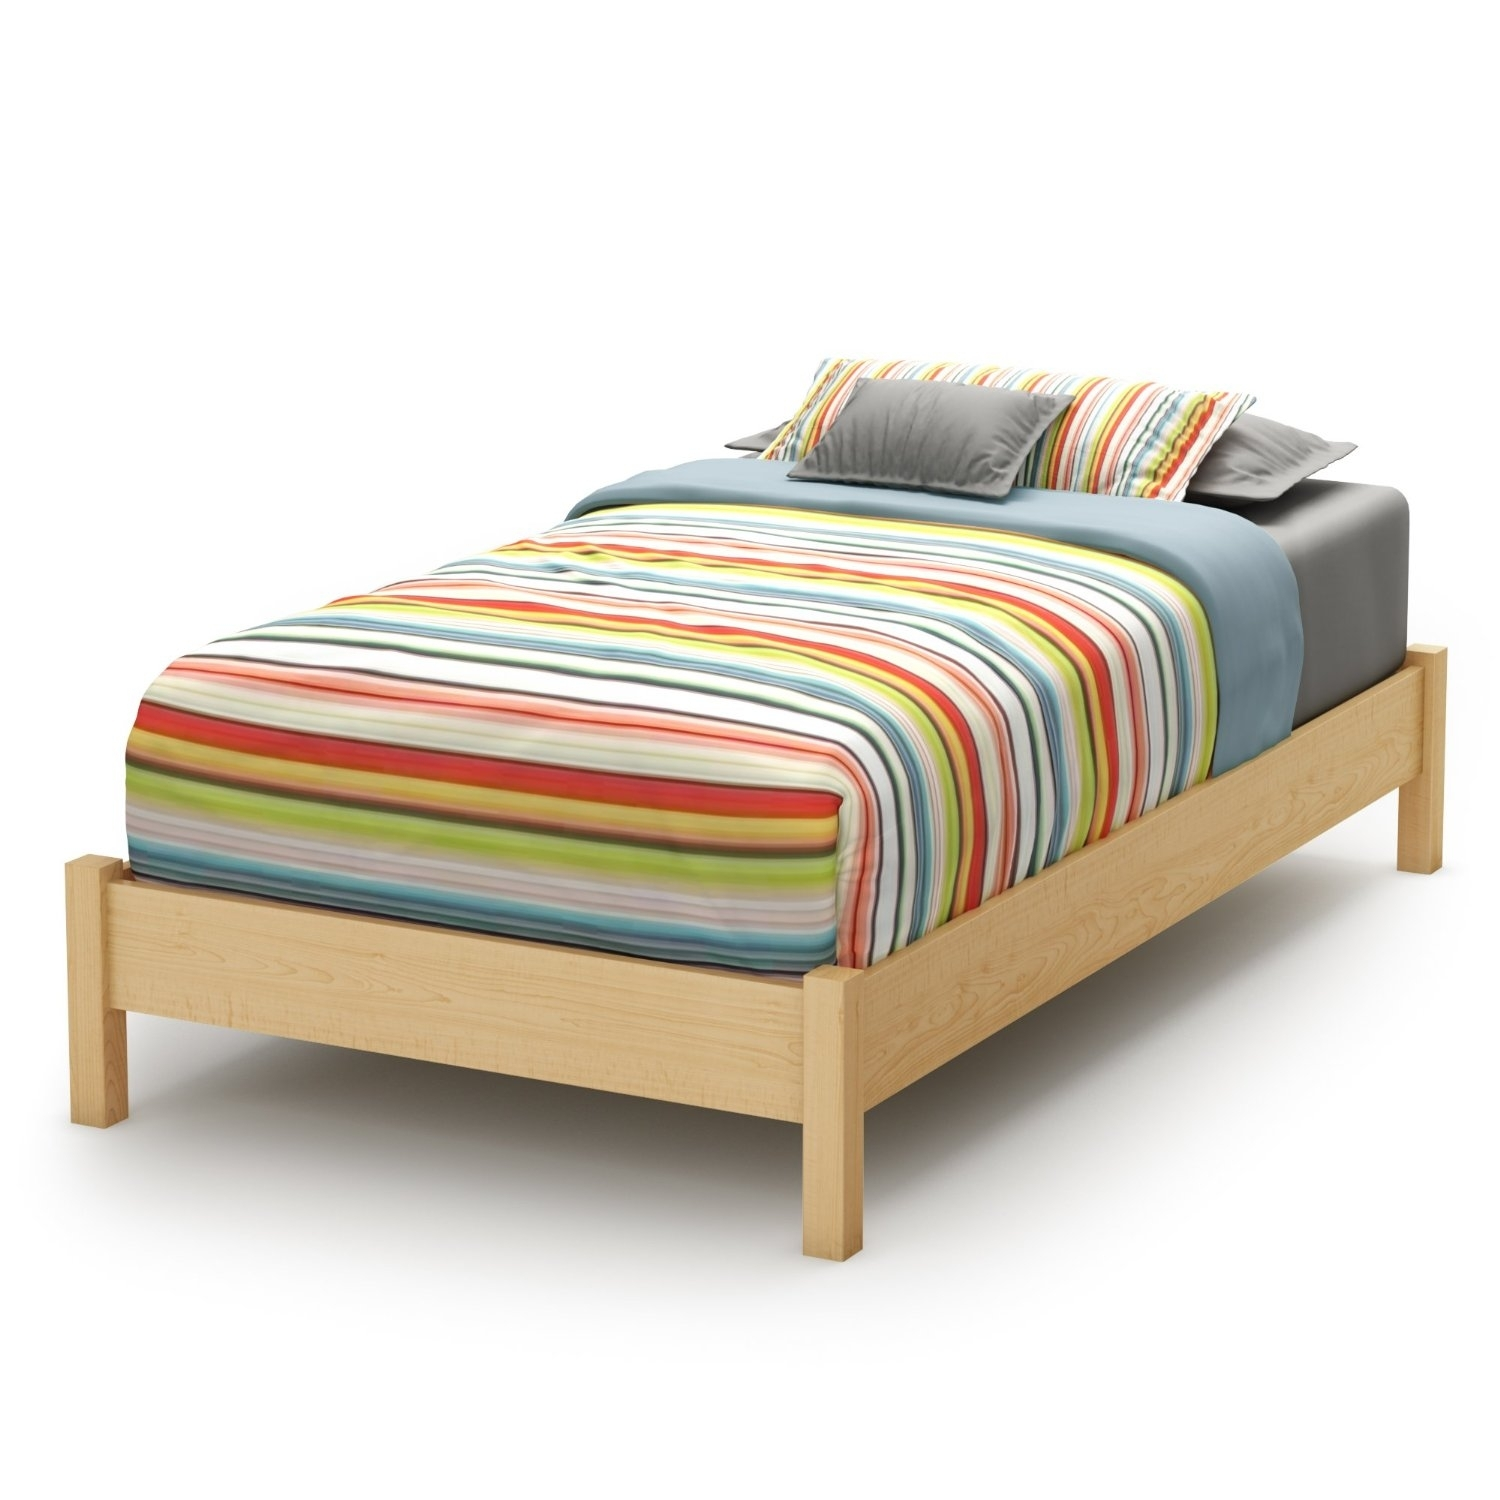 Permalink to Wood Twin Bed Frame With Headboard